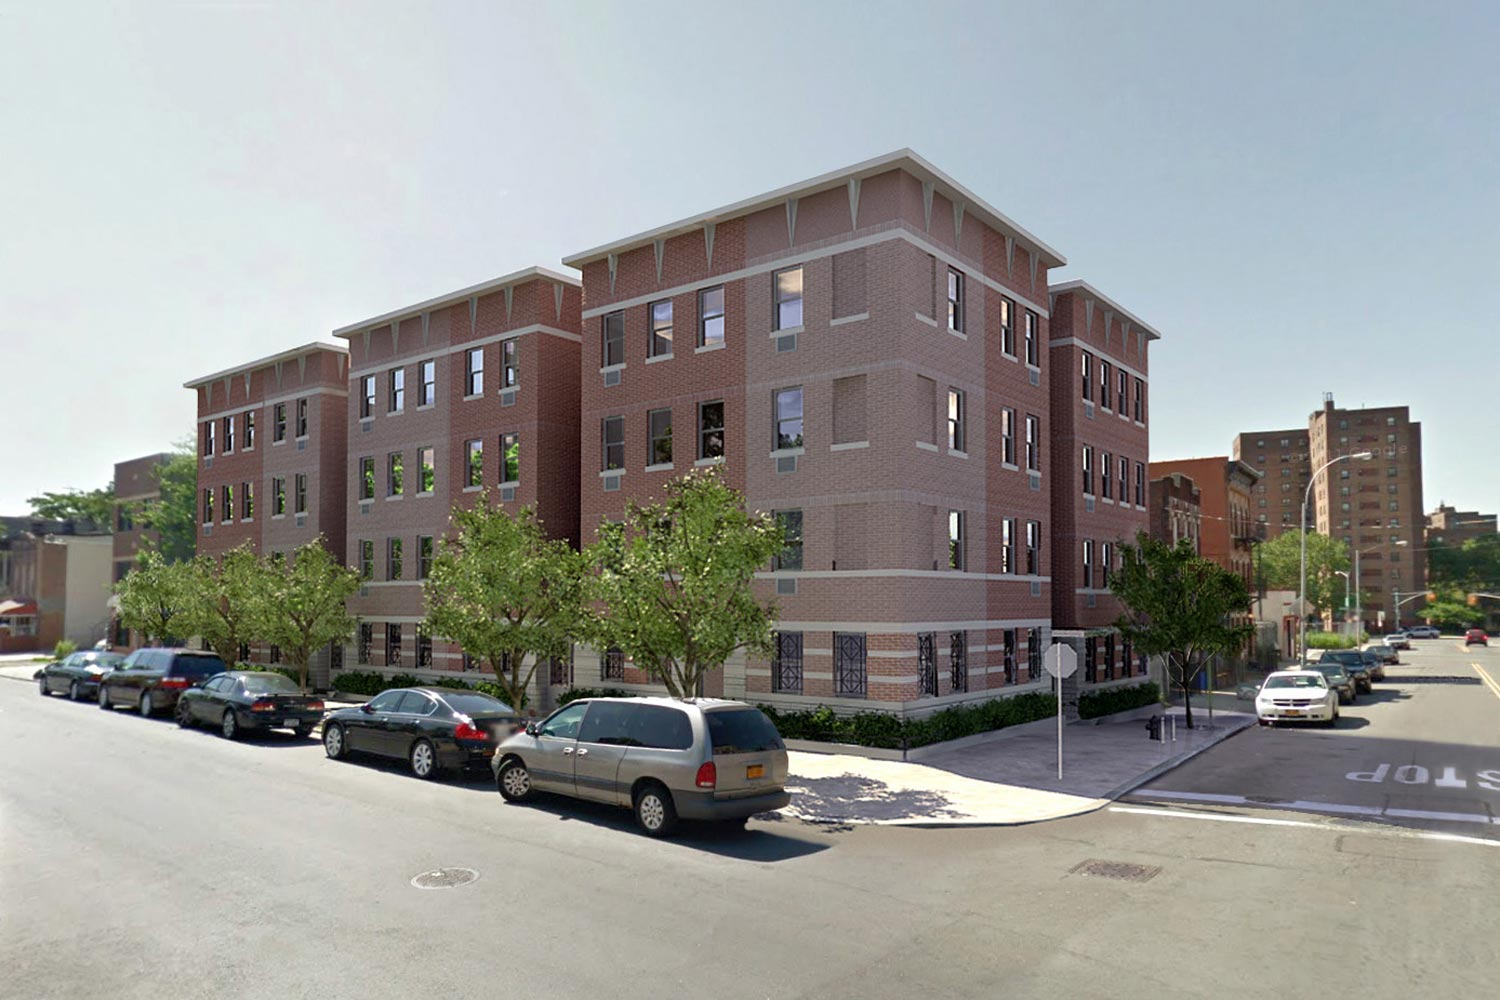 Dean Street Residences are a sustainable Habitat-NYC project creating affordable condos in Brooklyn.